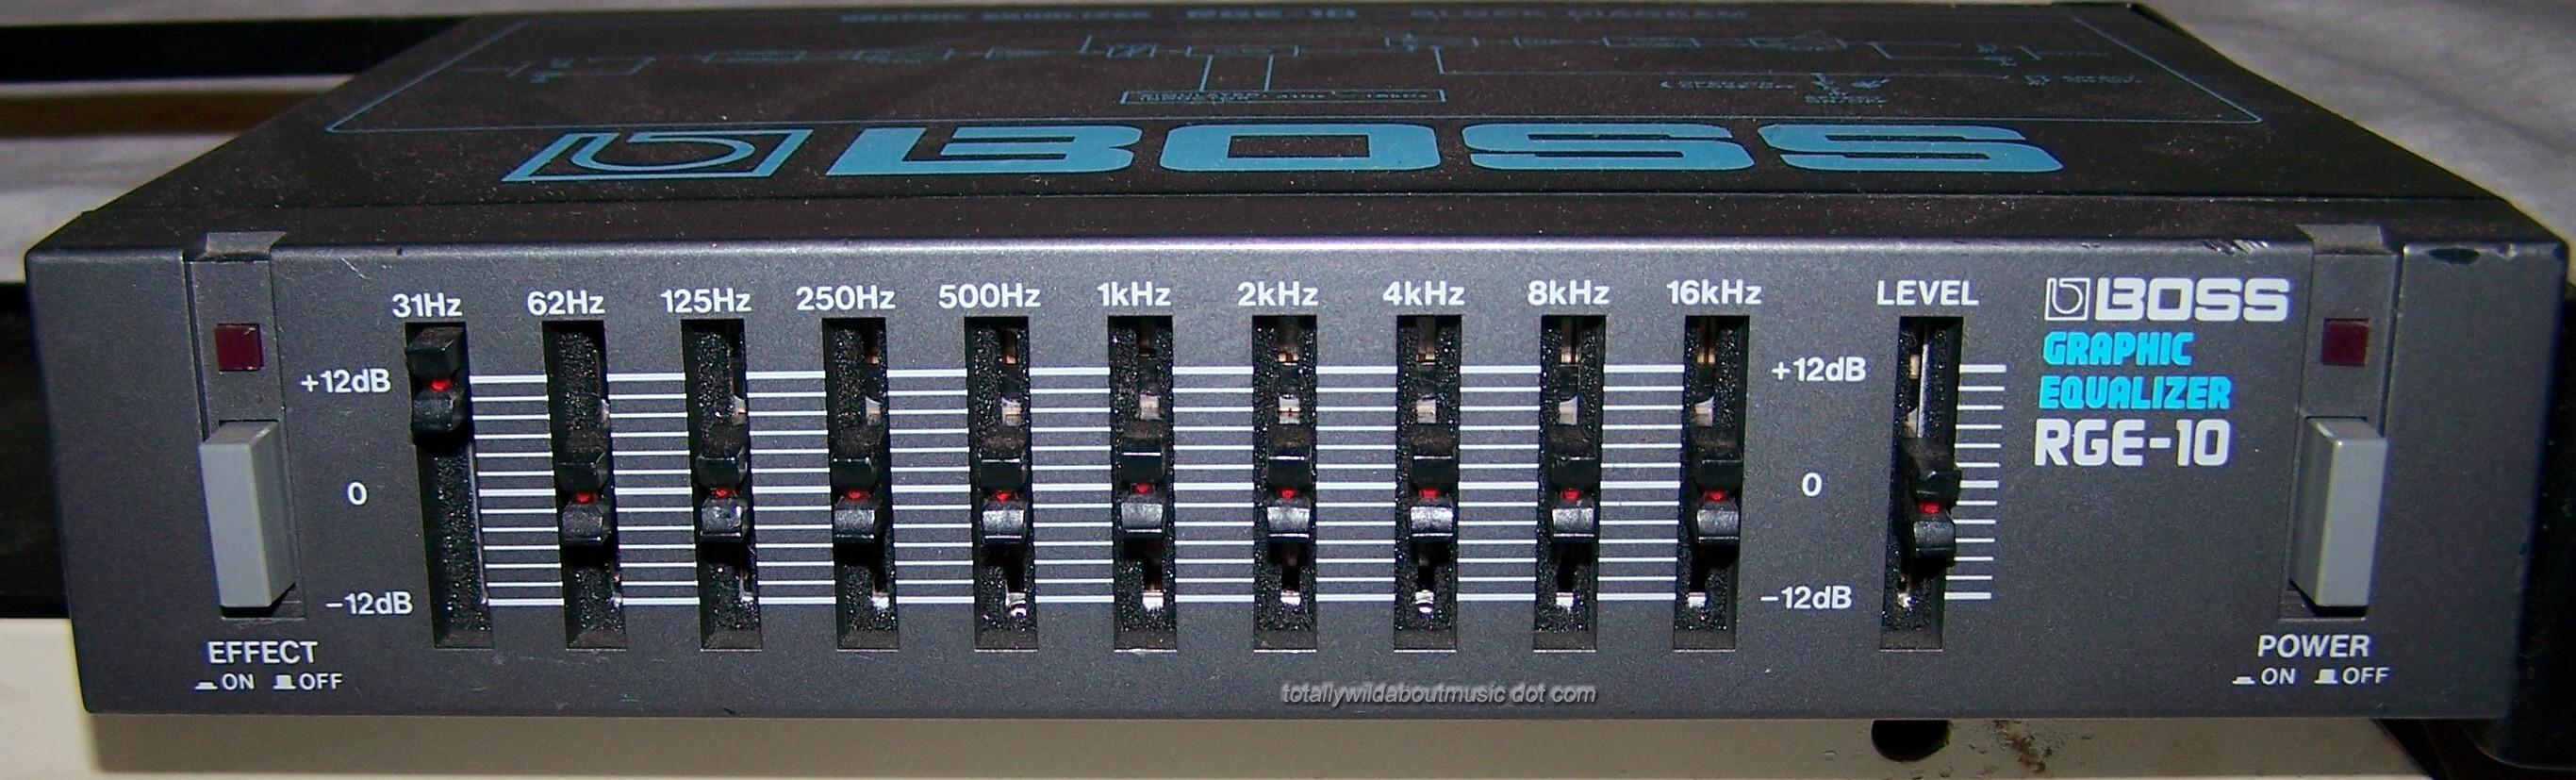 Marty62100s Review Boss Rge 10 Graphic Equalizer Audiofanzine Audio